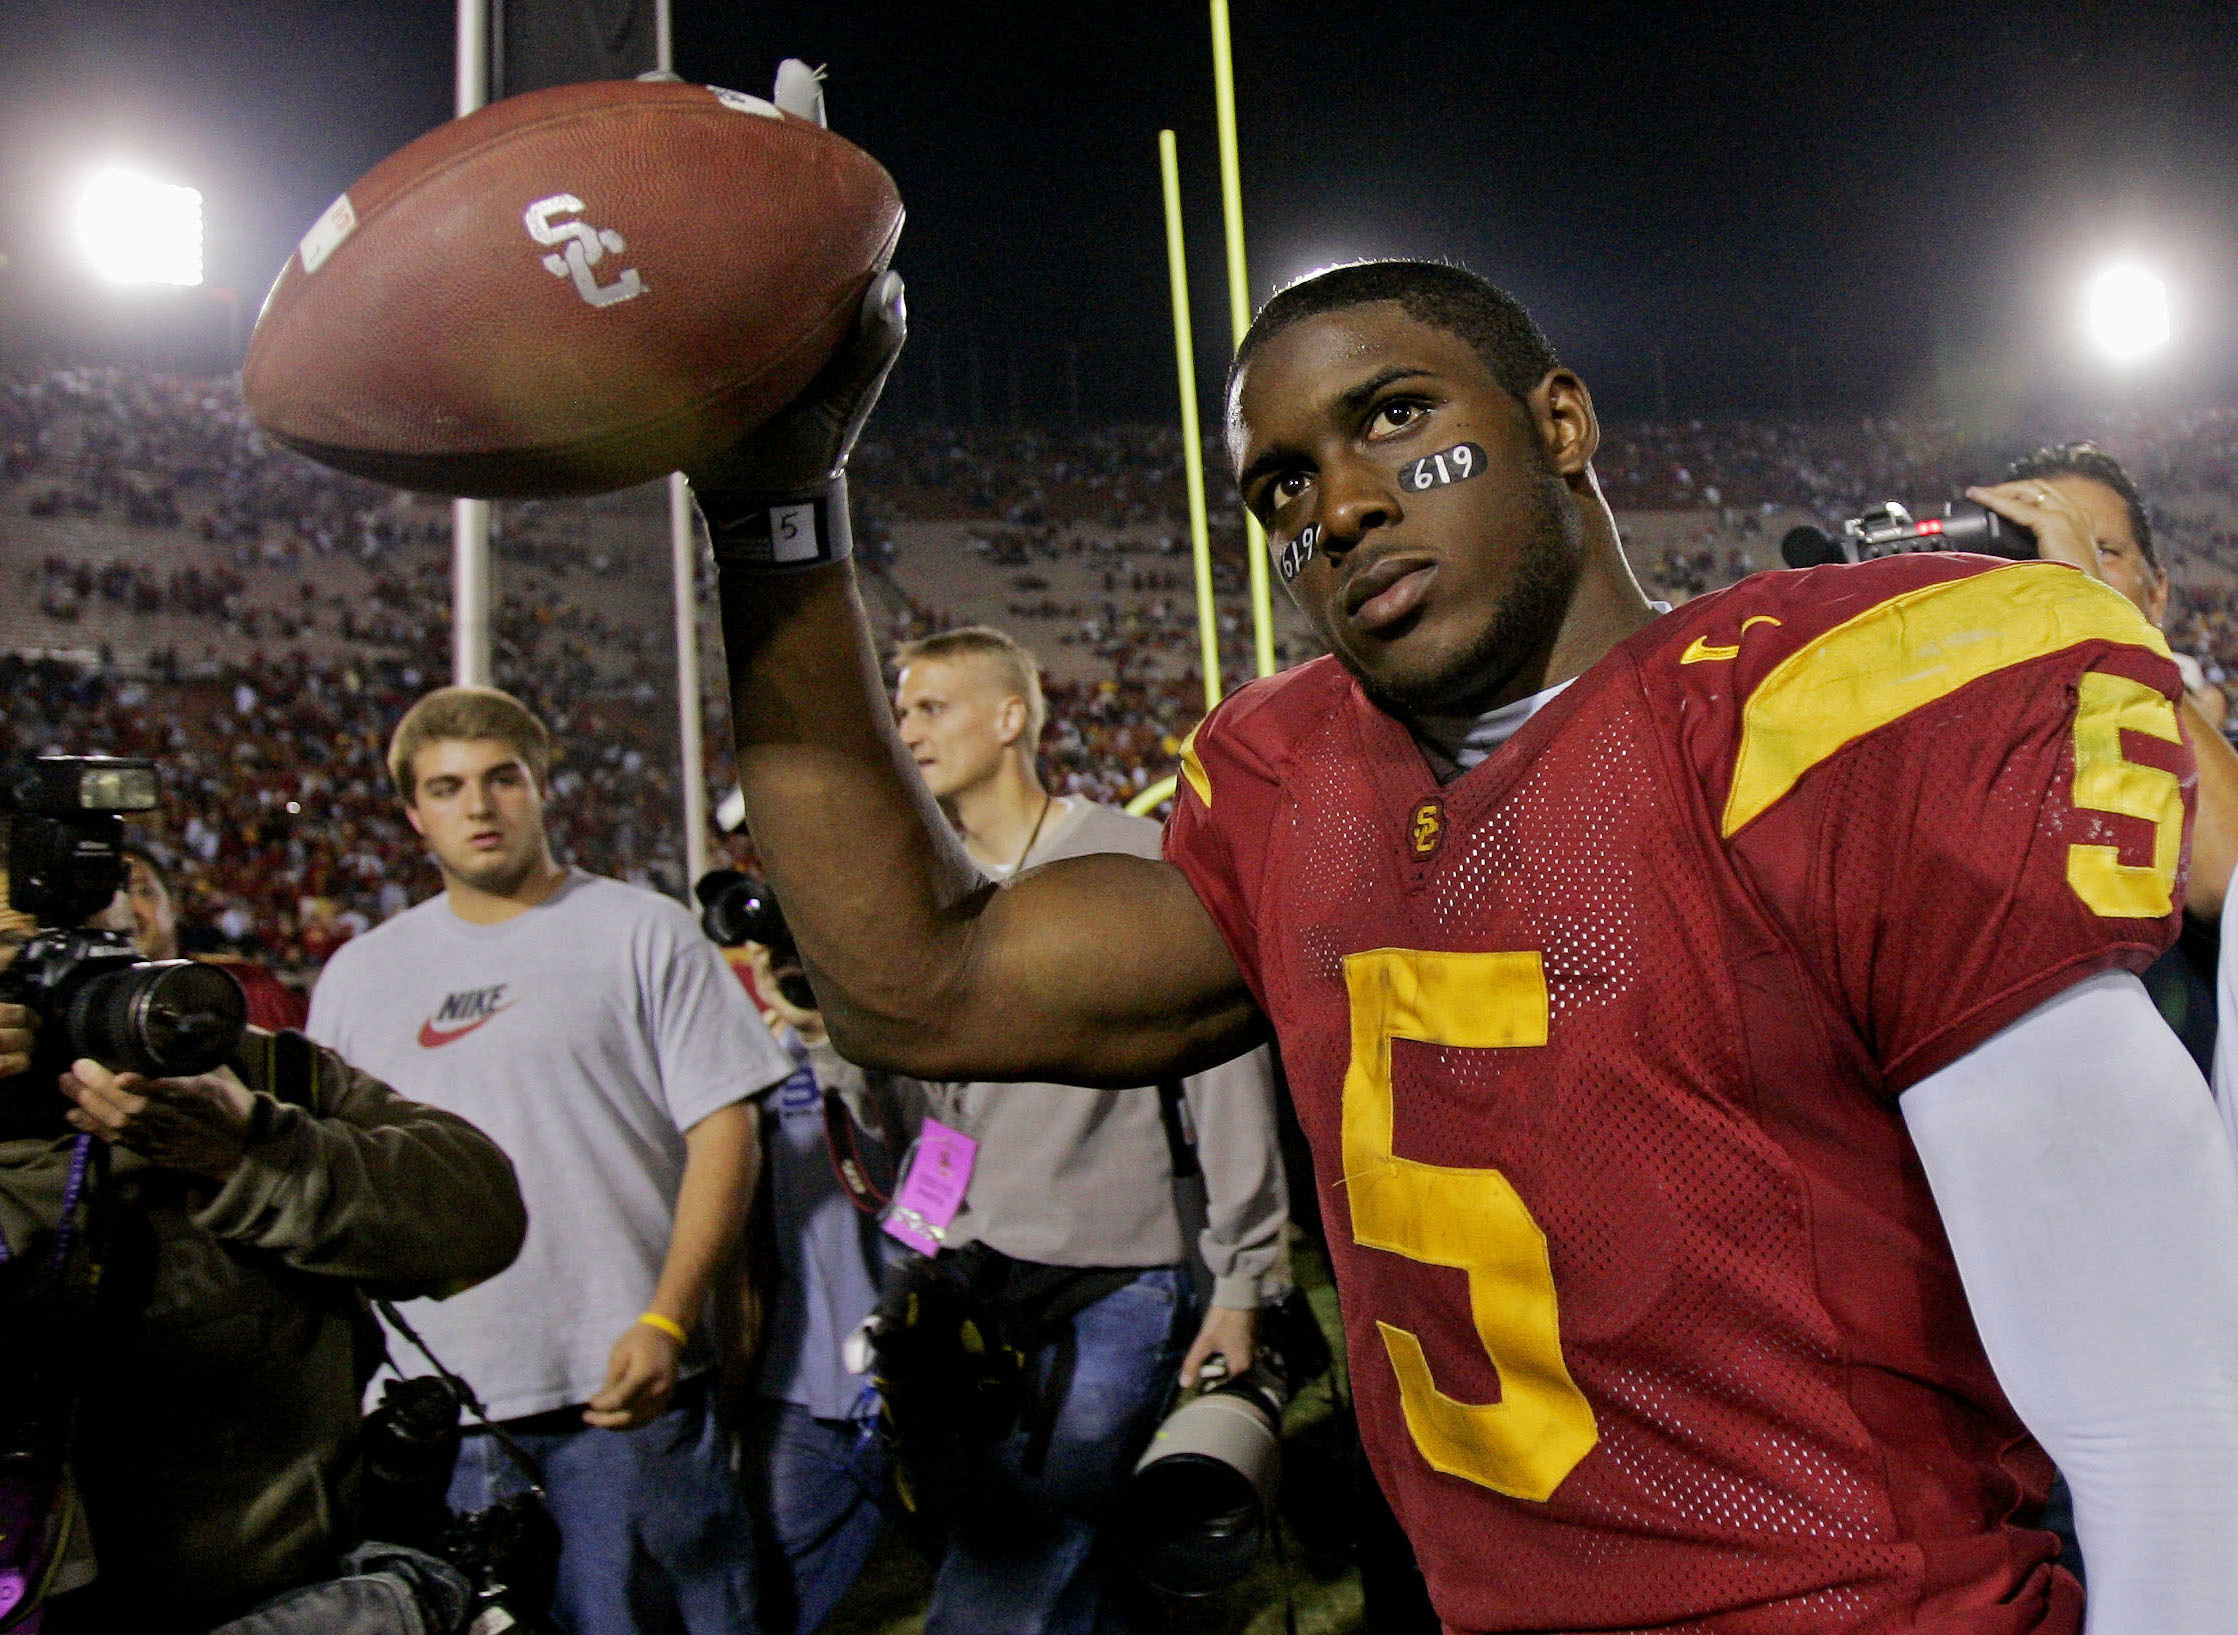 USC welcomes back Reggie Bush after 10 years in NCAA exile